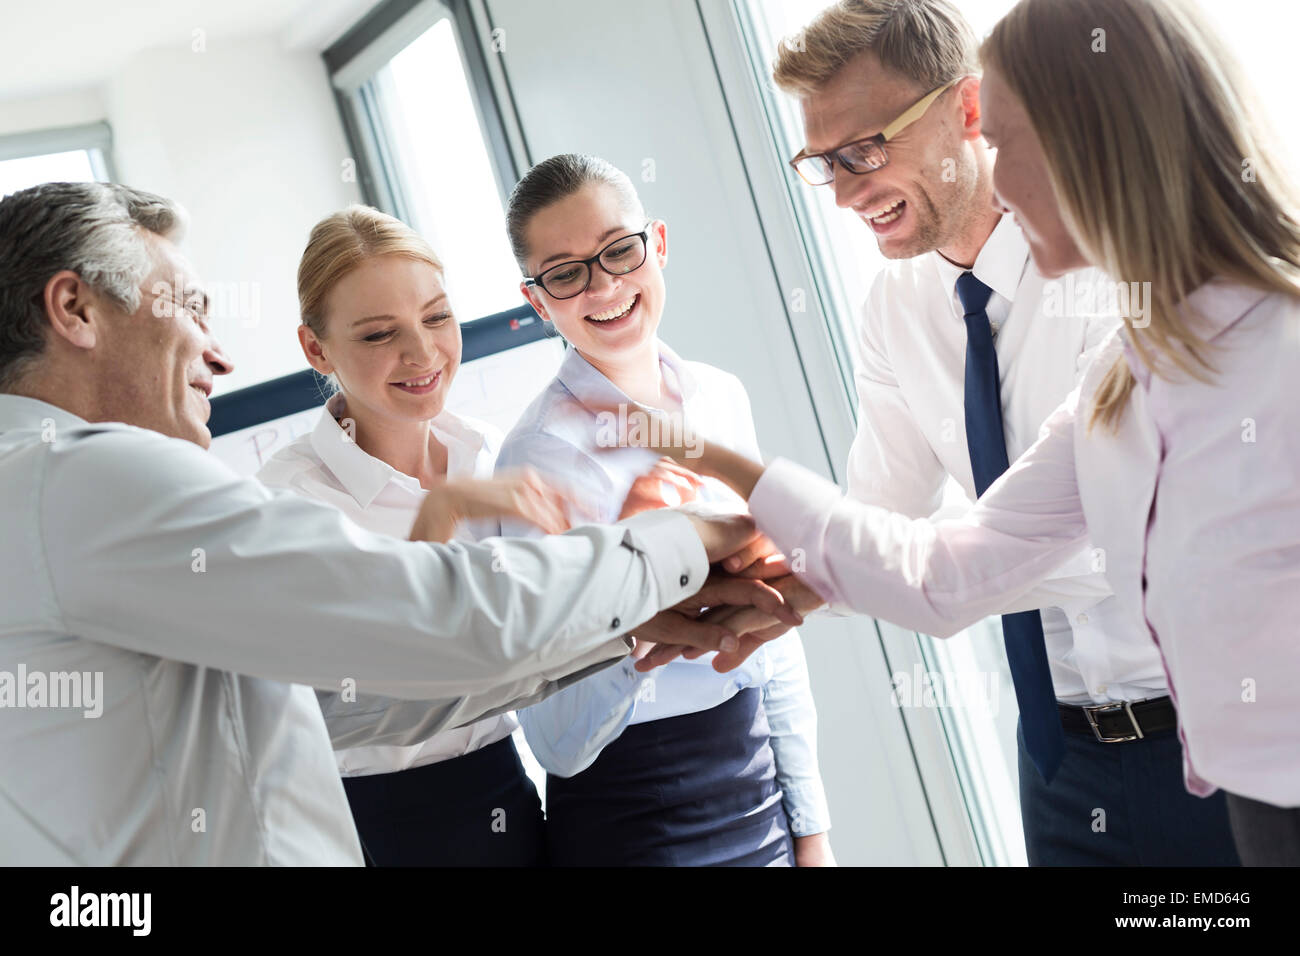 Business people with piled hands, bonding for success - Stock Image